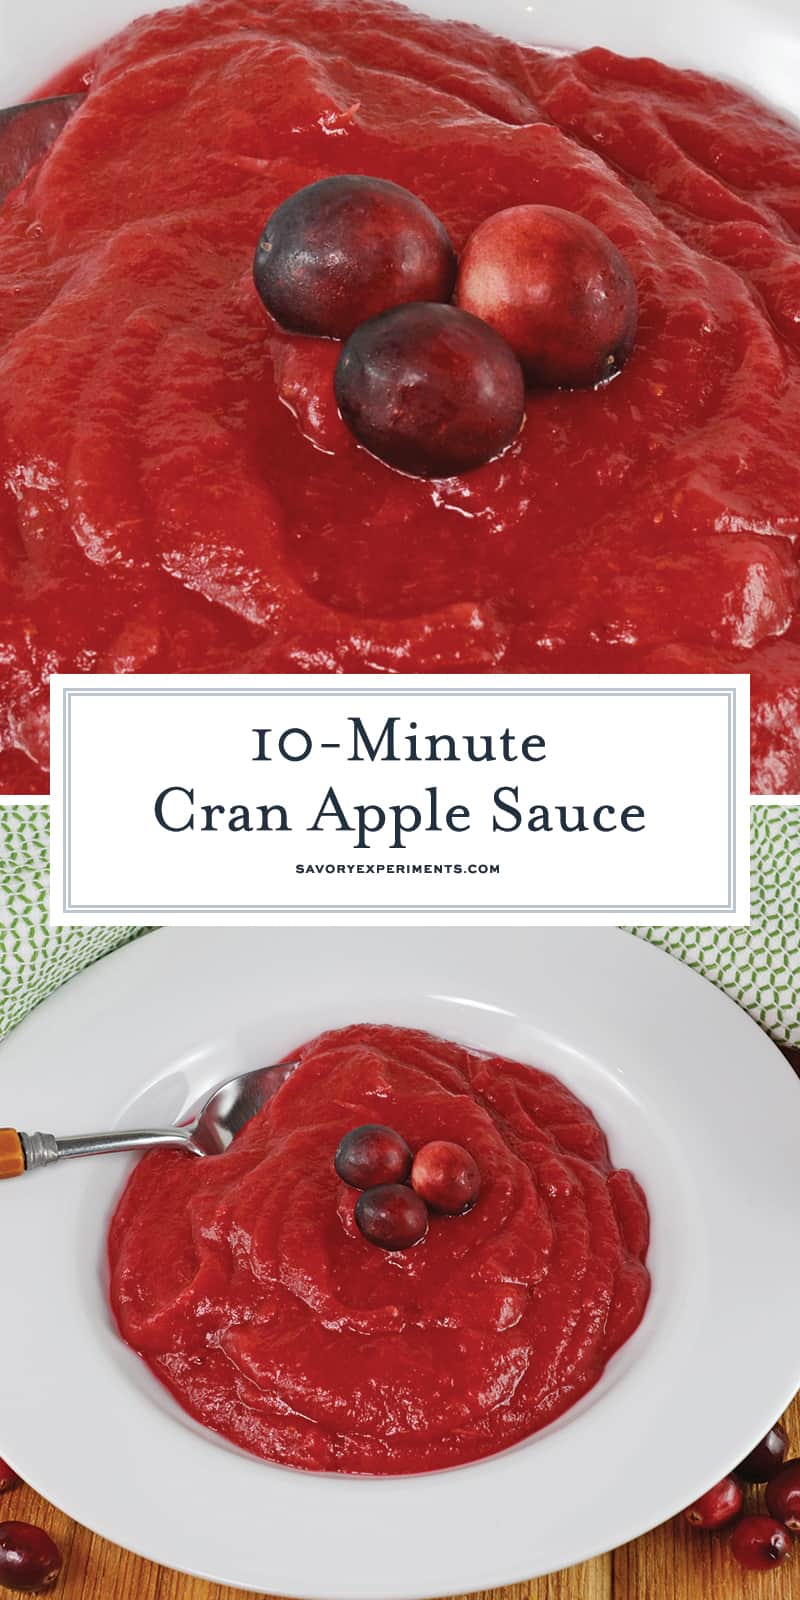 Quick Cran Apple Sauce really lives up to its name by only taking 10 minutes to make! An easy applesauce recipe and yummy treat to enjoy with the whole family! #homemadeapplesauce #waystousecranberries www.savoryexperiments.com